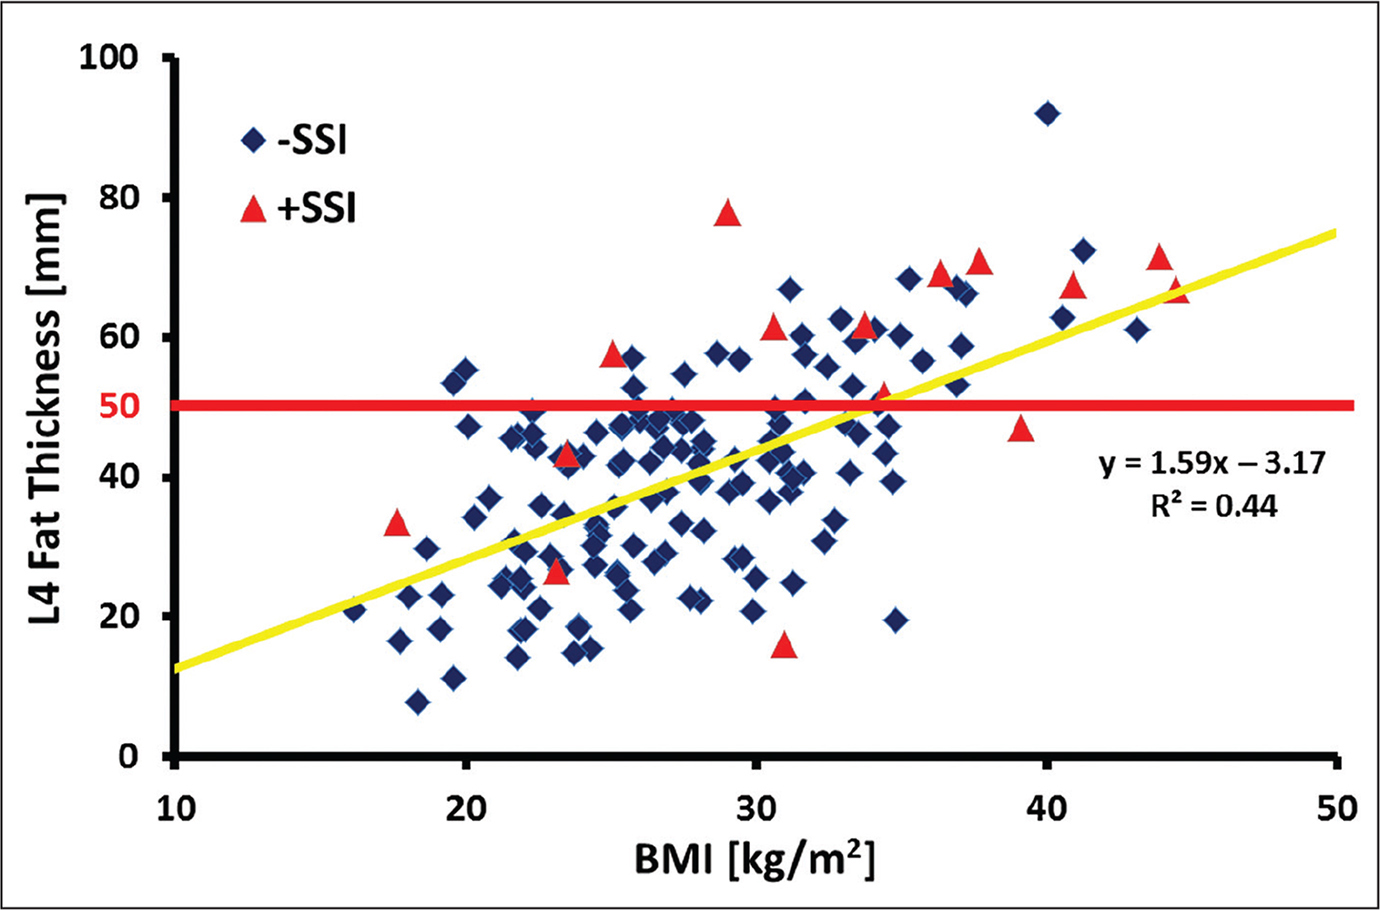 Scatter plot distribution of L4 fat thickness and body mass index (BMI) for the study cohort. Triangles indicate those with surgical site infection (+SSI), and diamonds indicate those without surgical site infection (-SSI). Those with fat thickness greater than 50 mm at L4 had a 4-fold increase in the odds of SSI compared with those with fat thickness less than 50 mm. Moderate correlation was observed between L4 fat thickness and BMI.